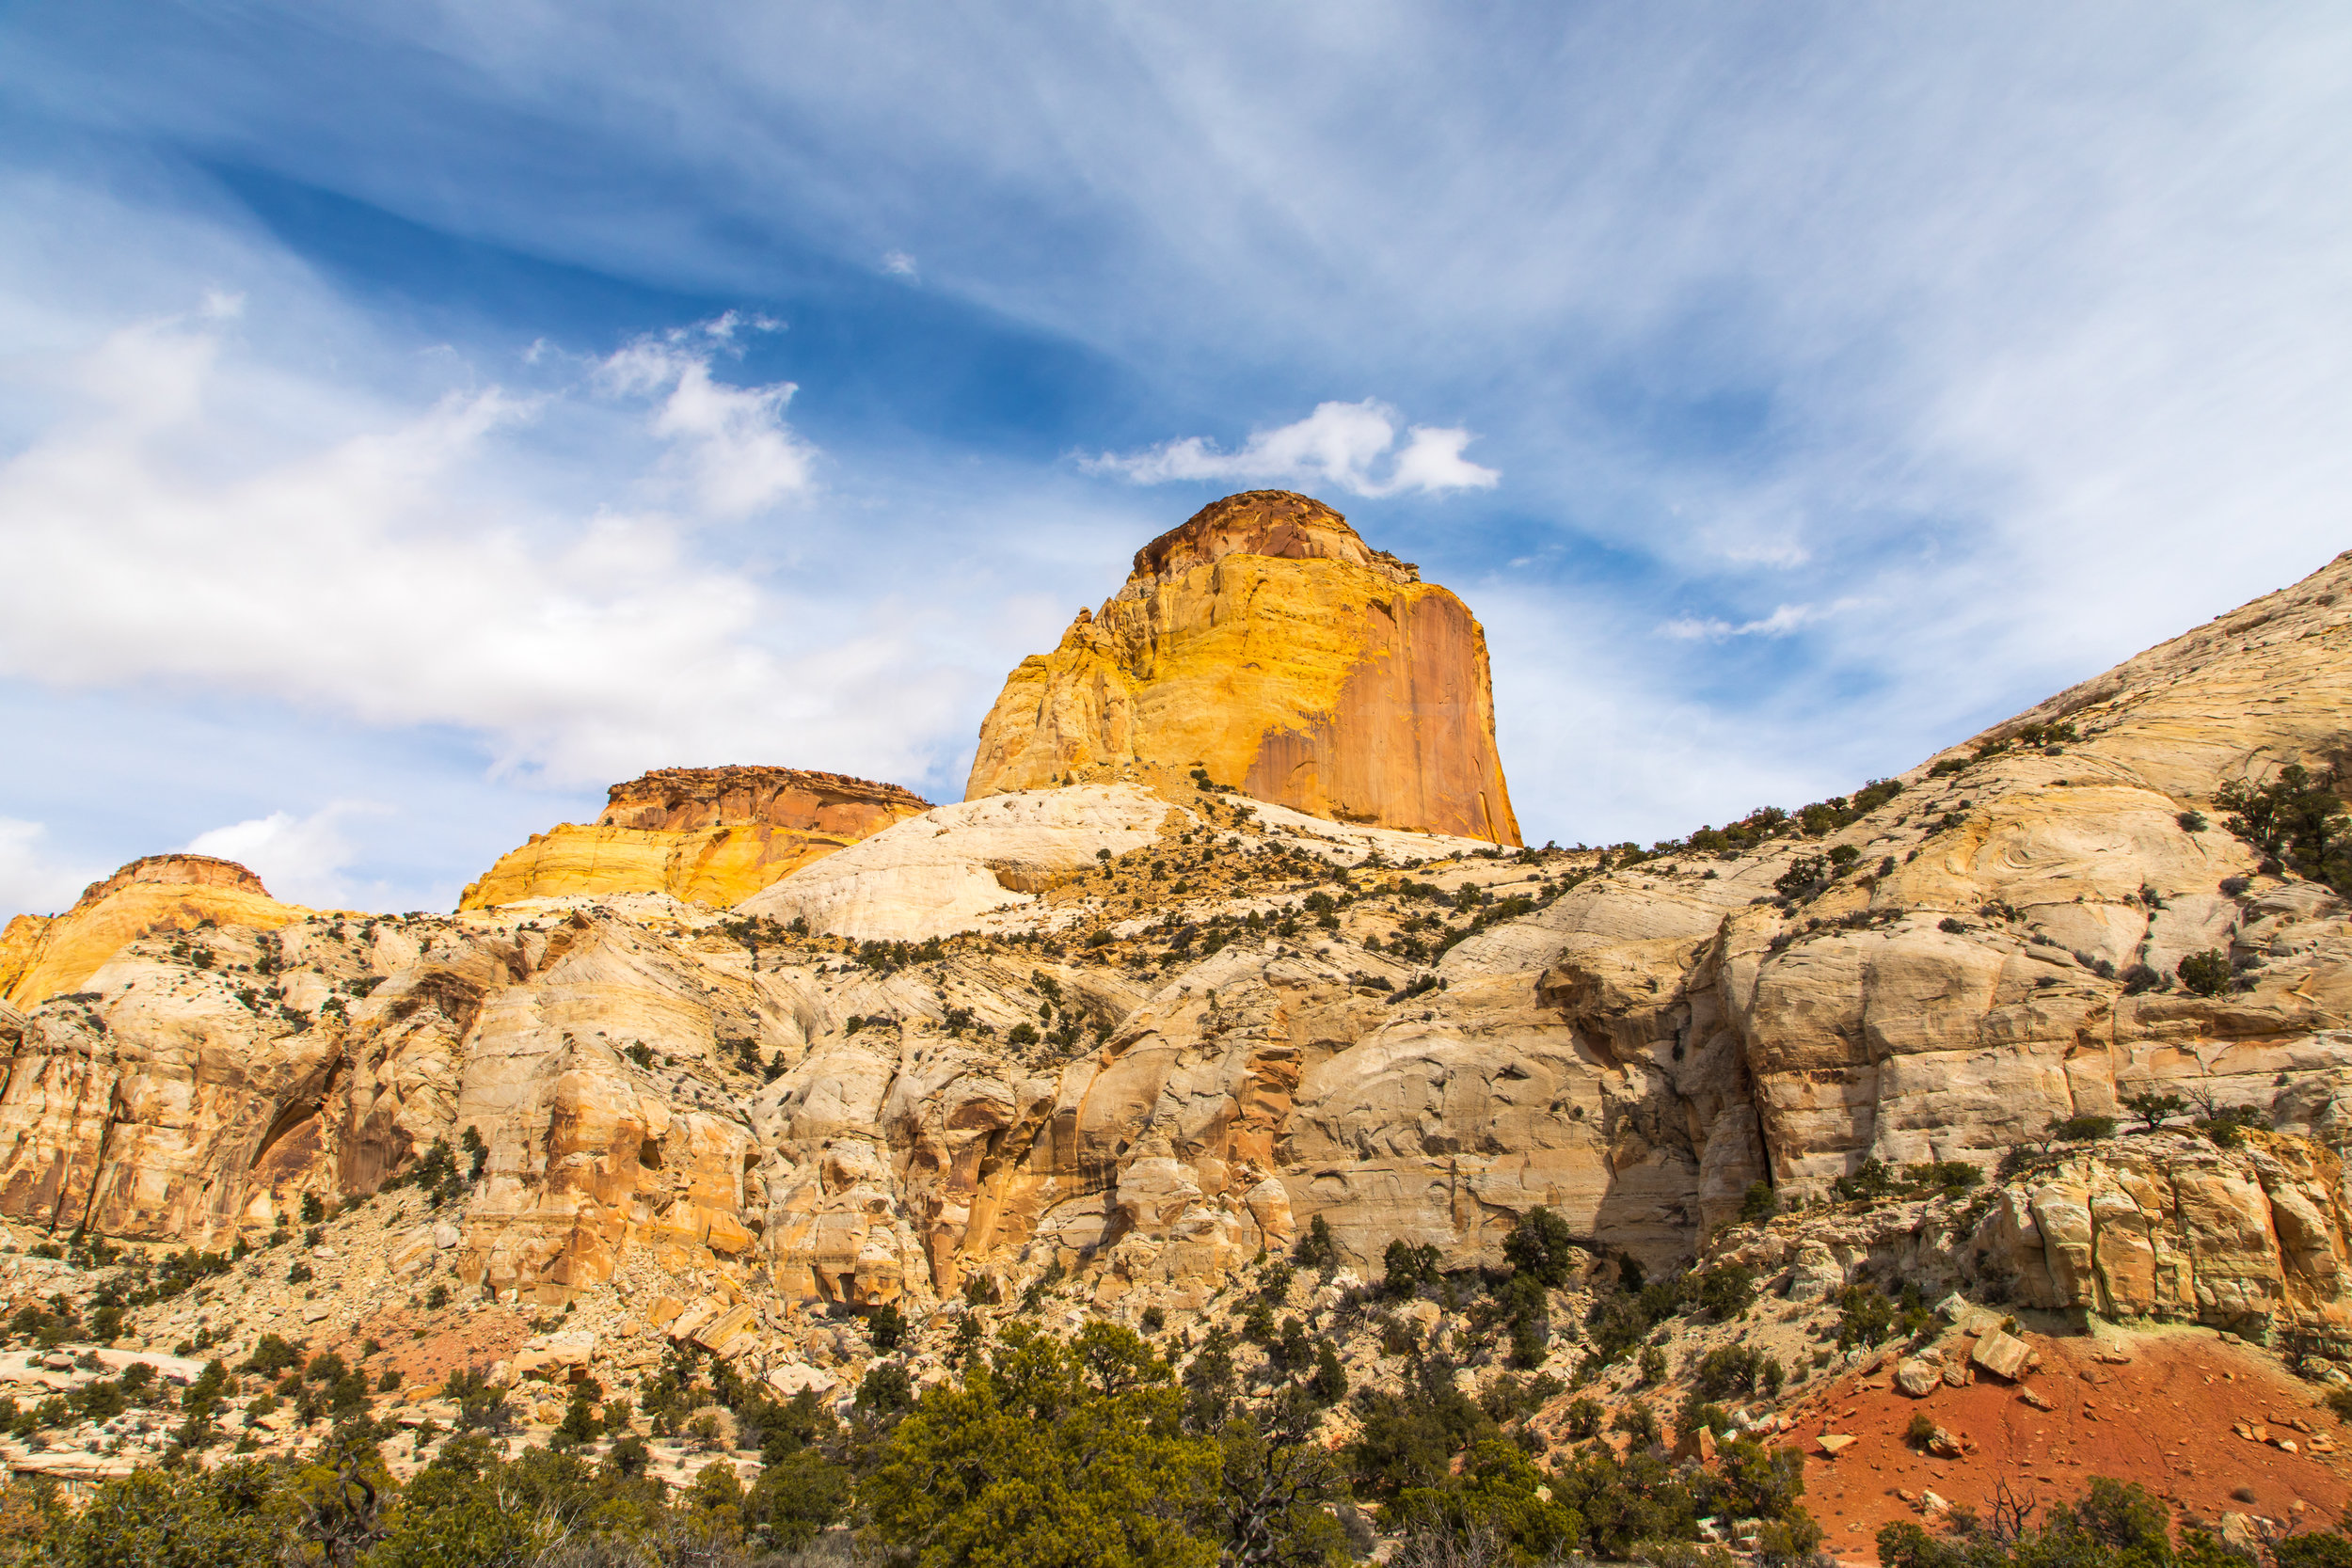 Capitol Reef National Park, Image # 1079